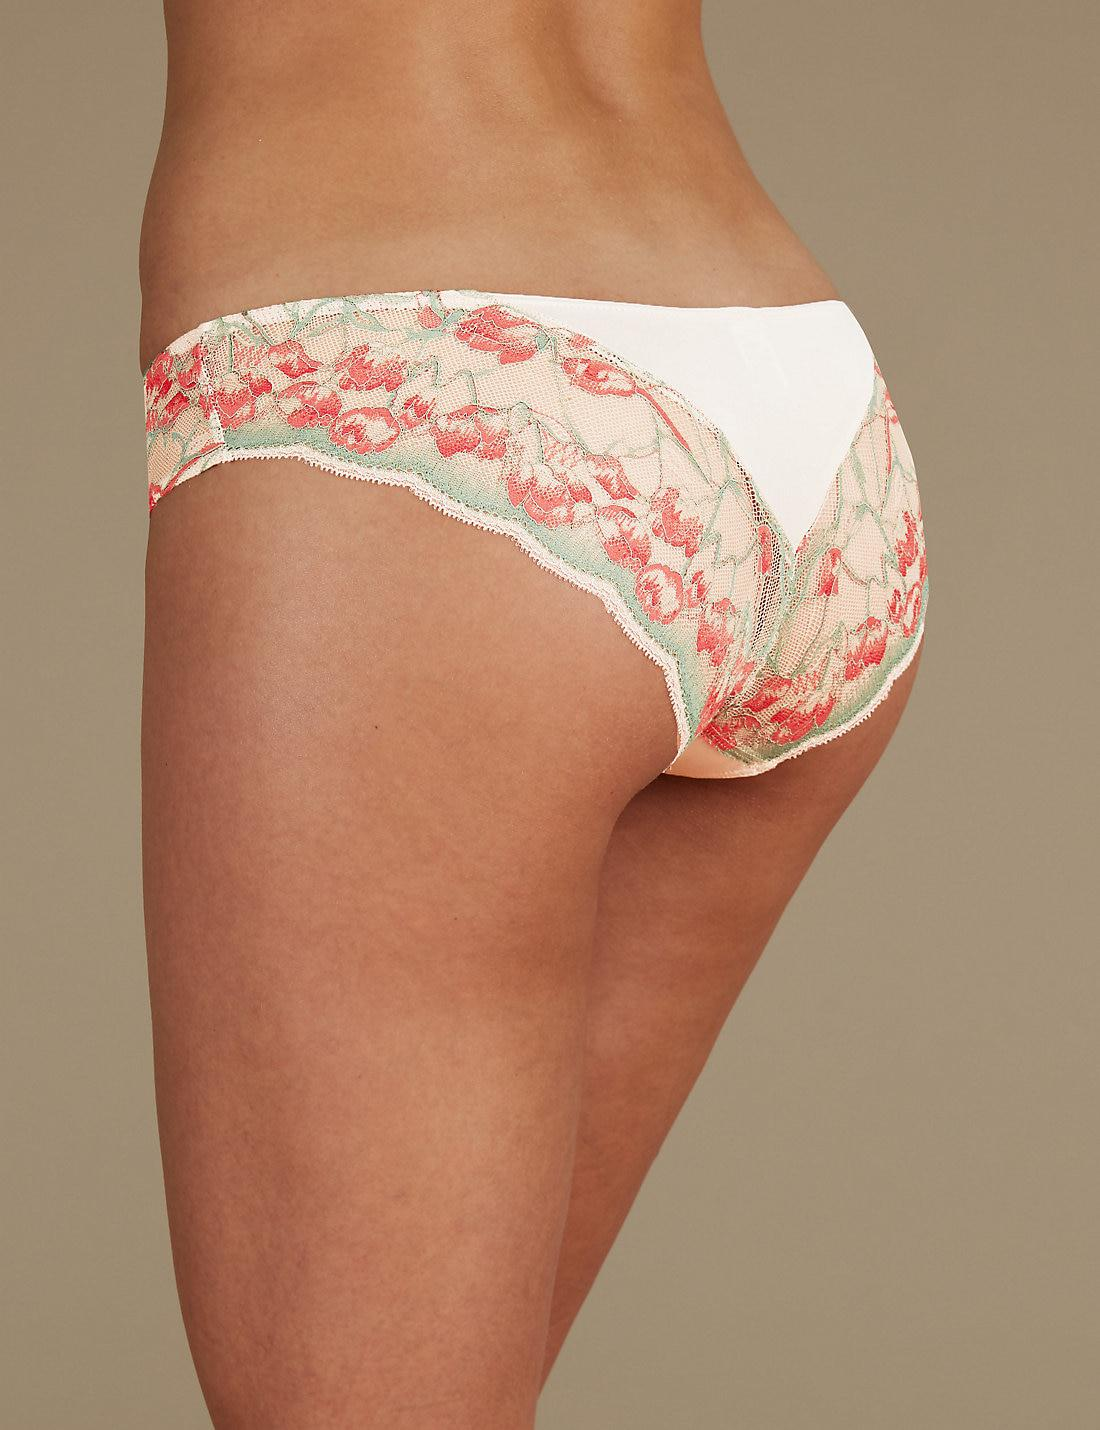 M/&S Louisa Floral Lace High Leg Knickers//Briefs Flirty Heart shaped back